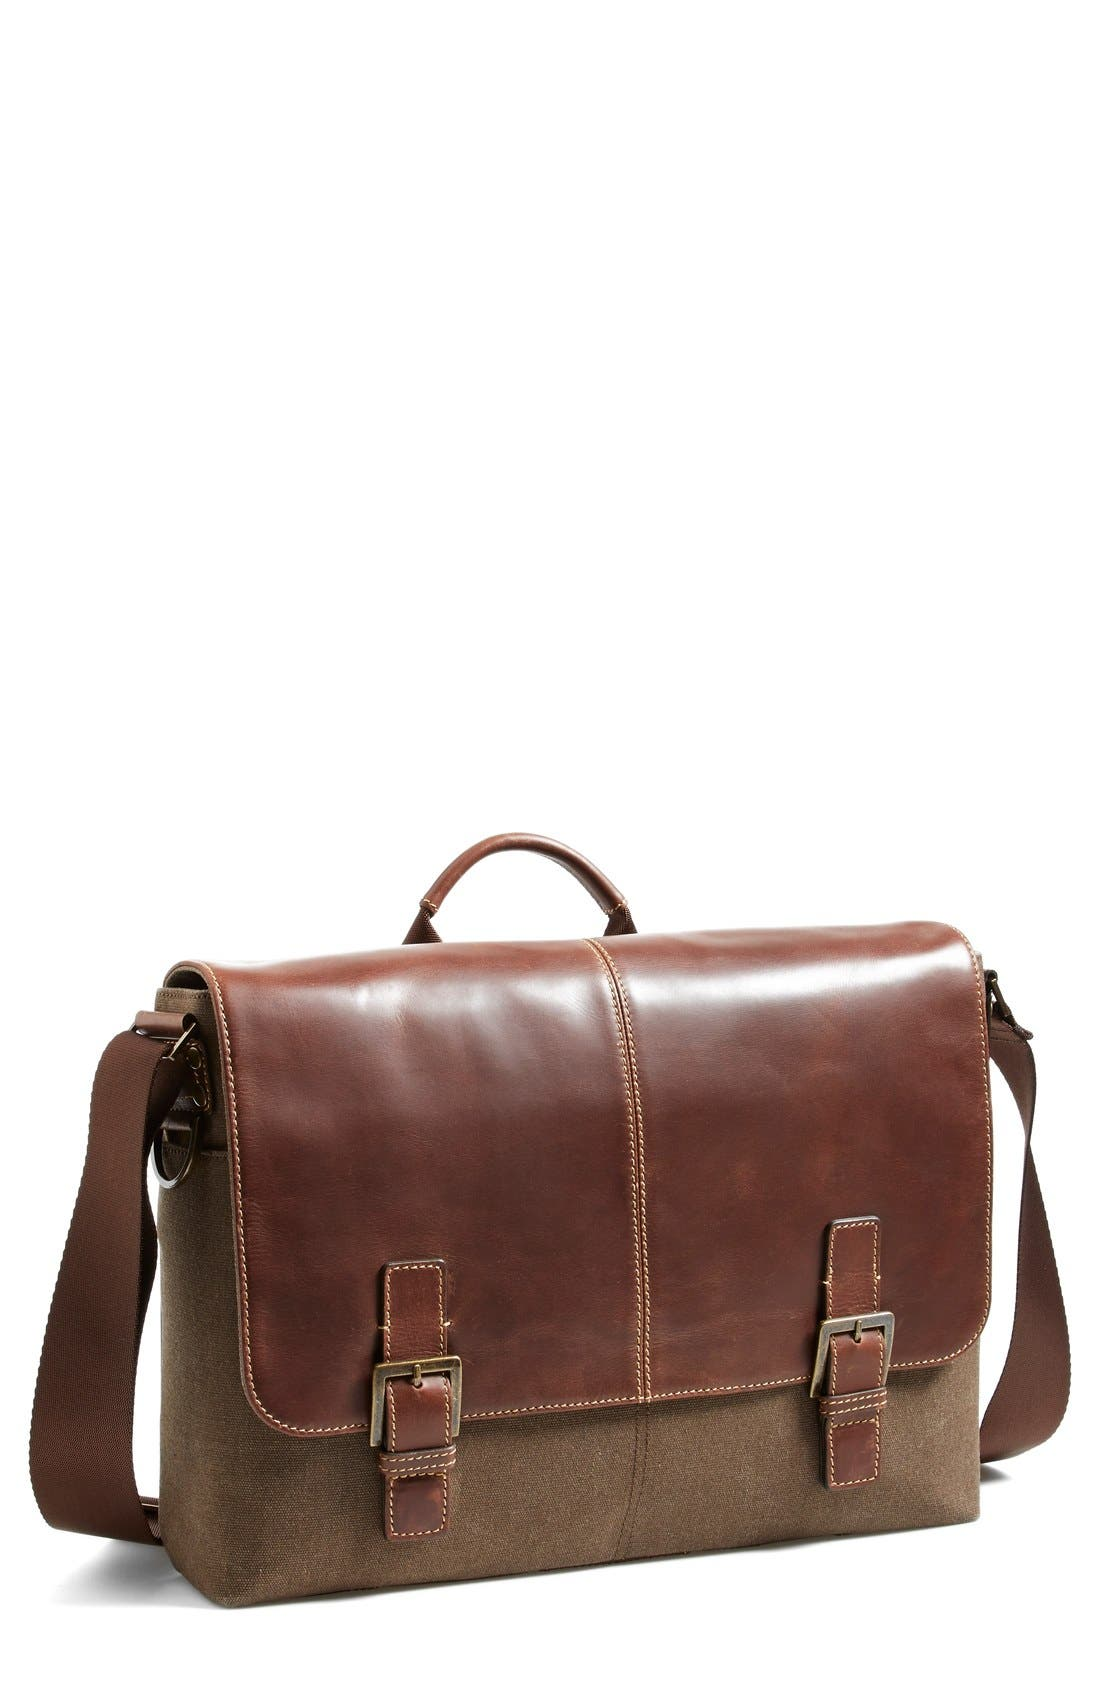 'Bryant' Messenger Bag,                             Main thumbnail 1, color,                             HEATHER BROWN